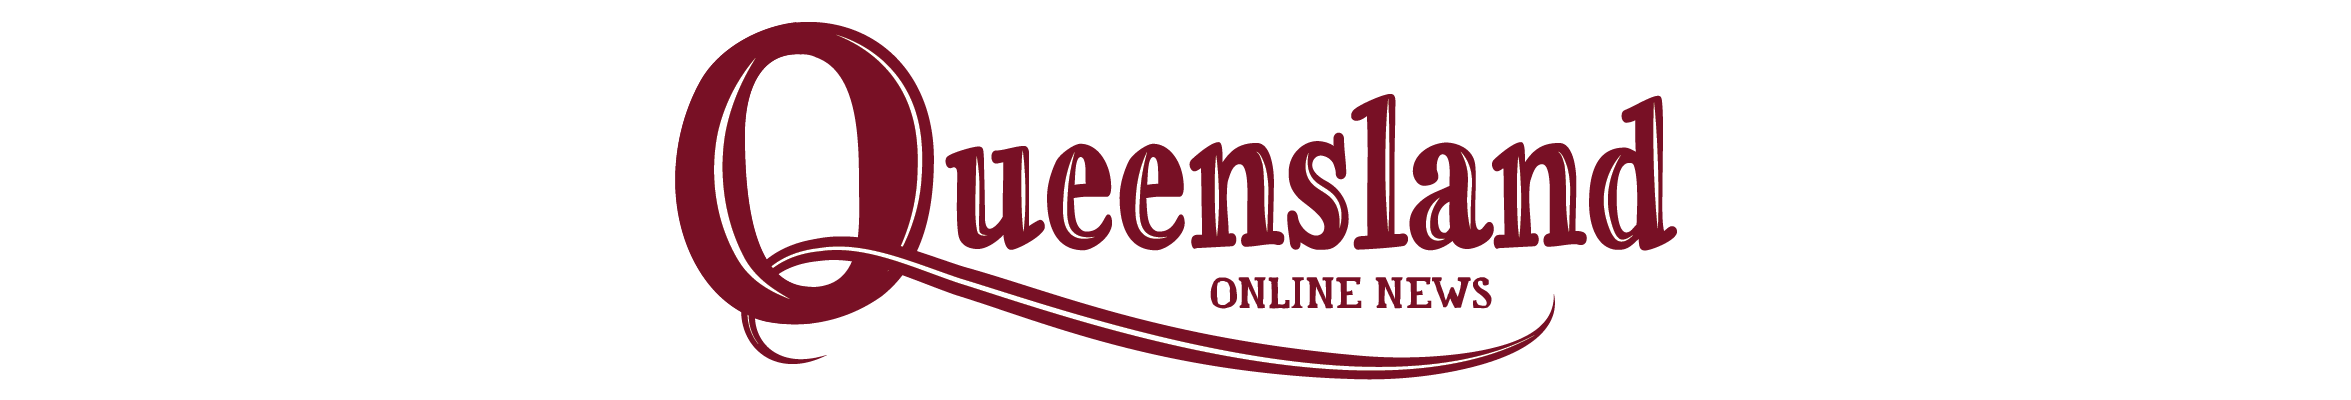 Queensland Online News